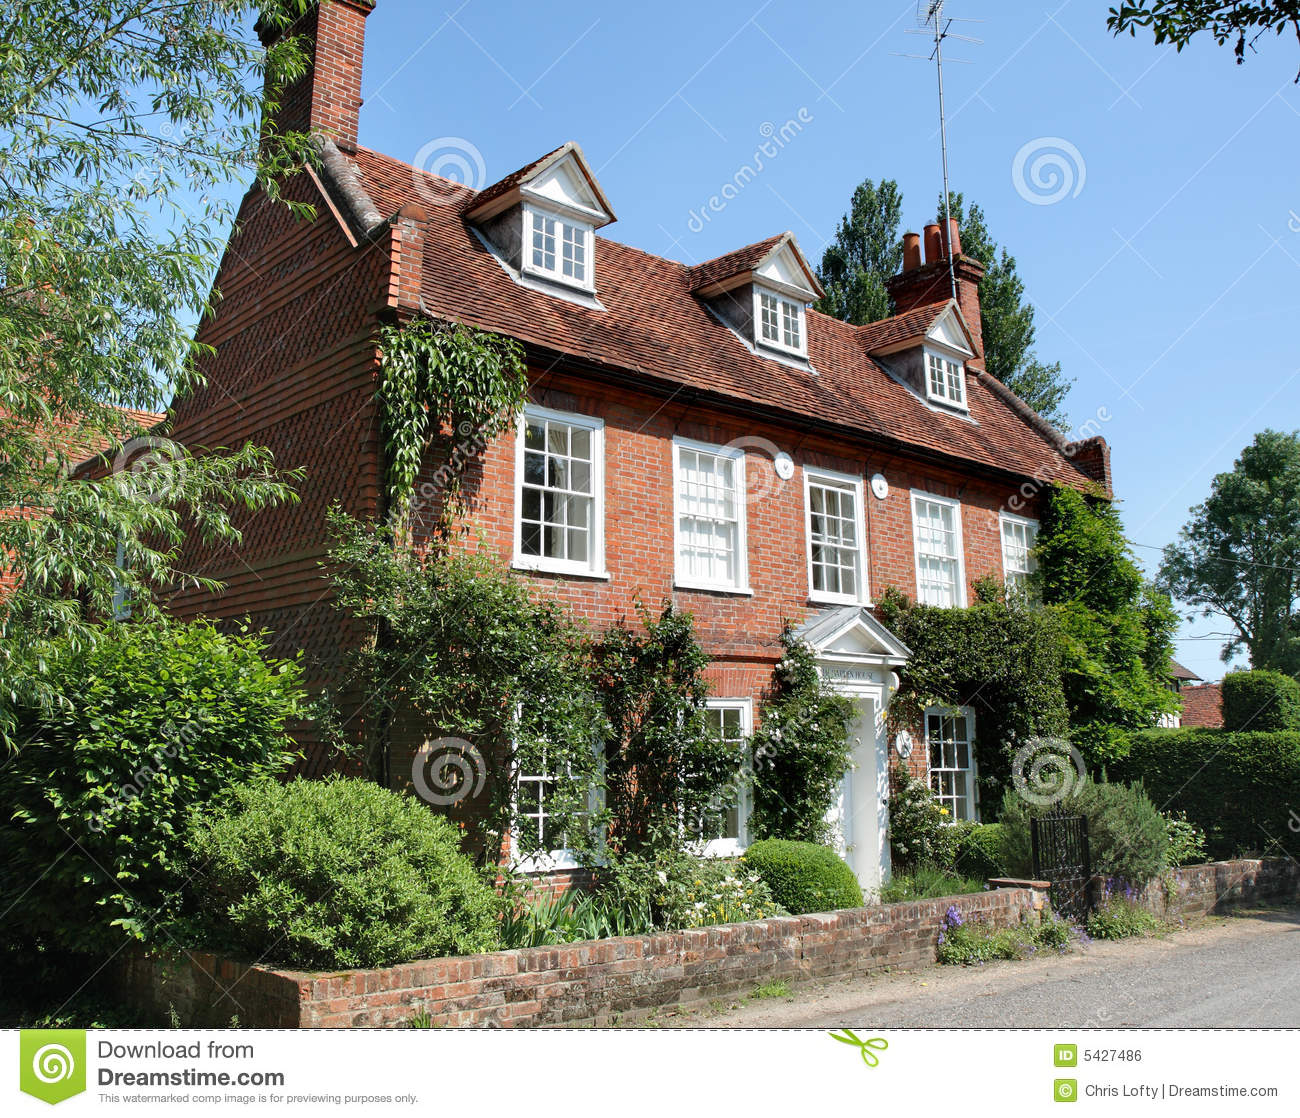 Traditional english village house stock photo image of for Classic english house